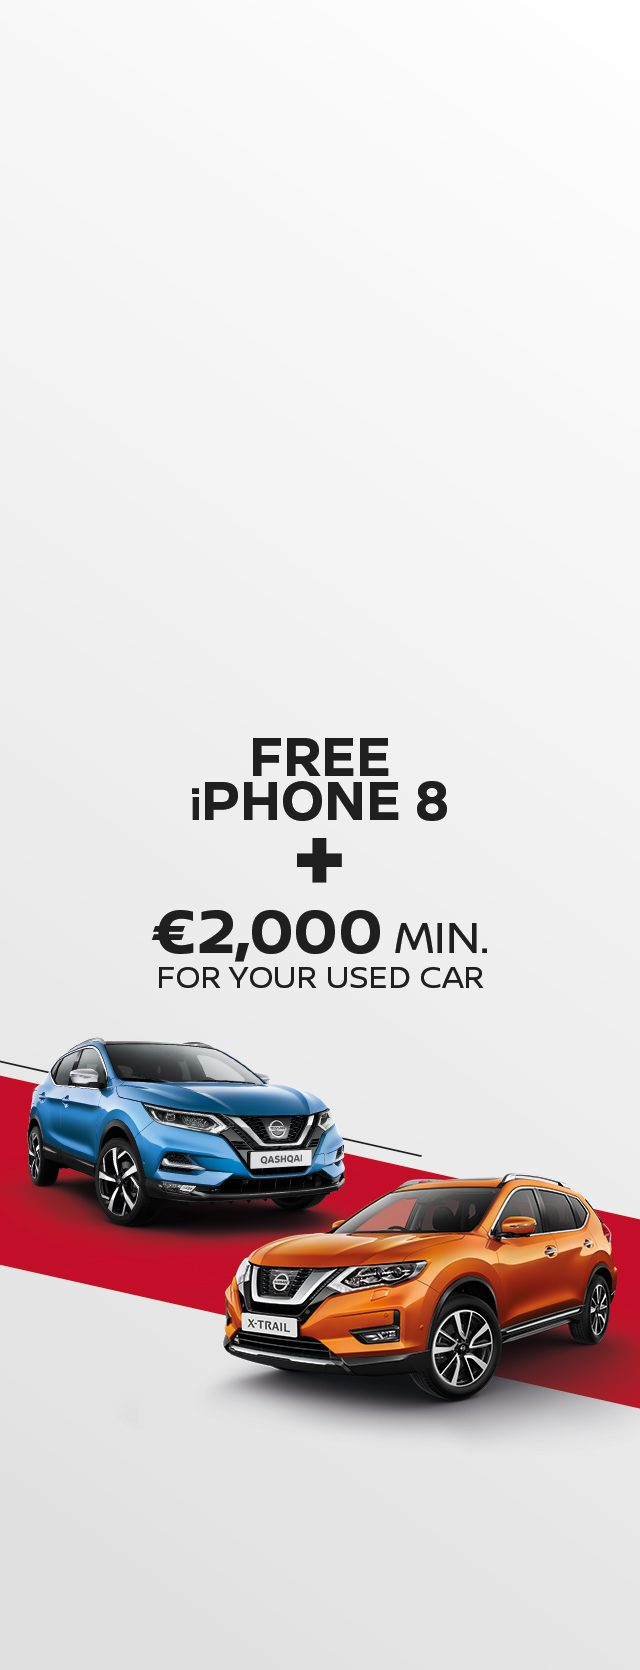 Nissan Qashqai and X-Trail August offer - free iPhone 8